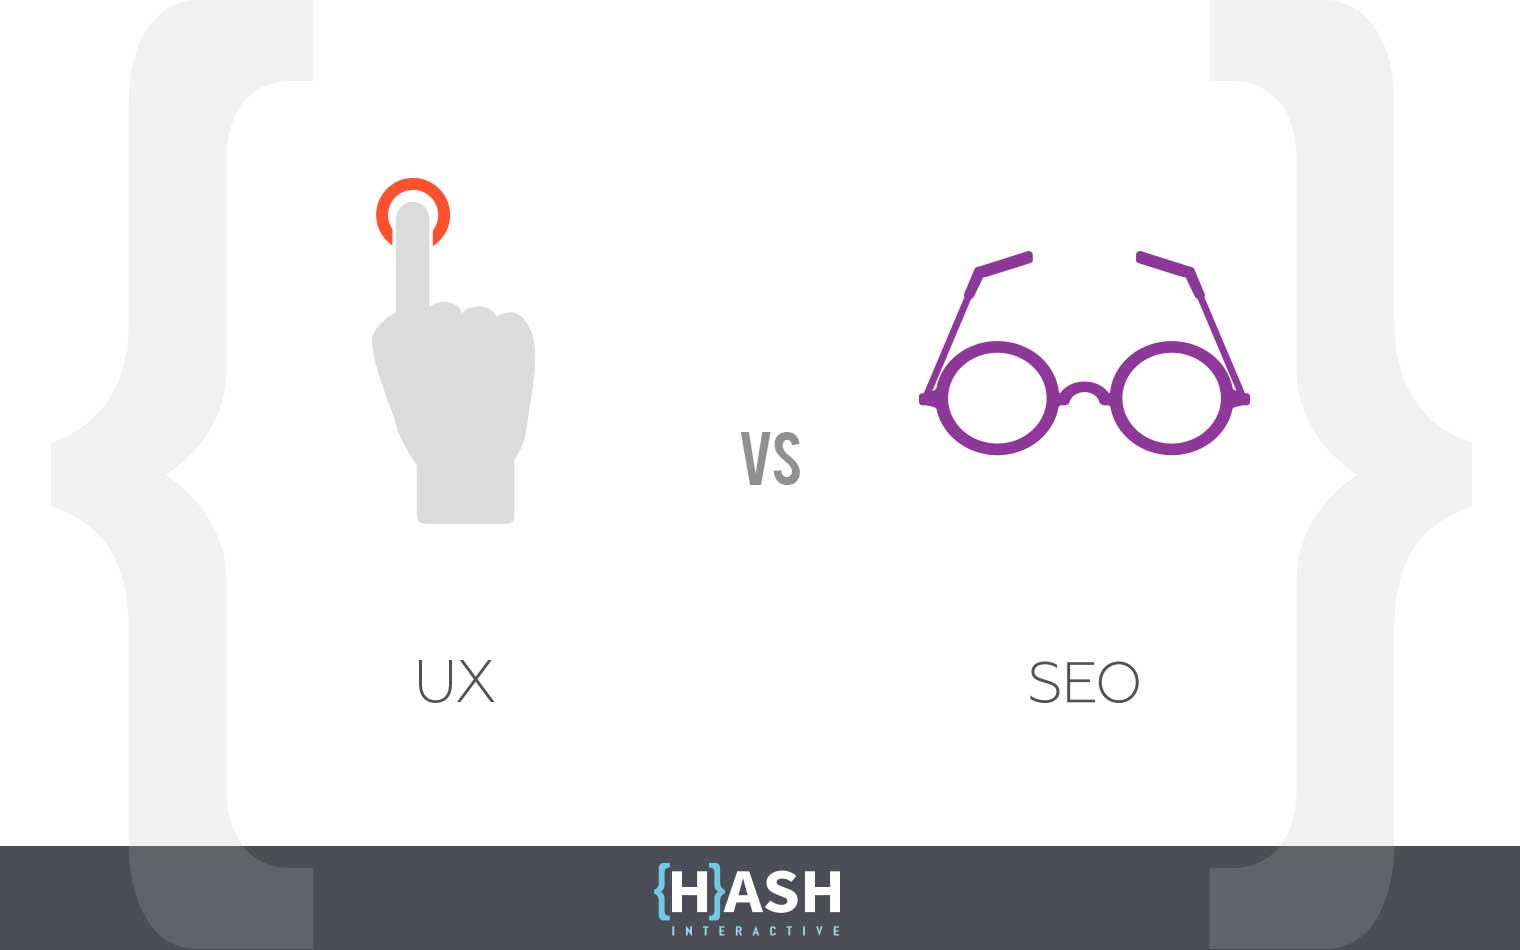 ux vs seo blog